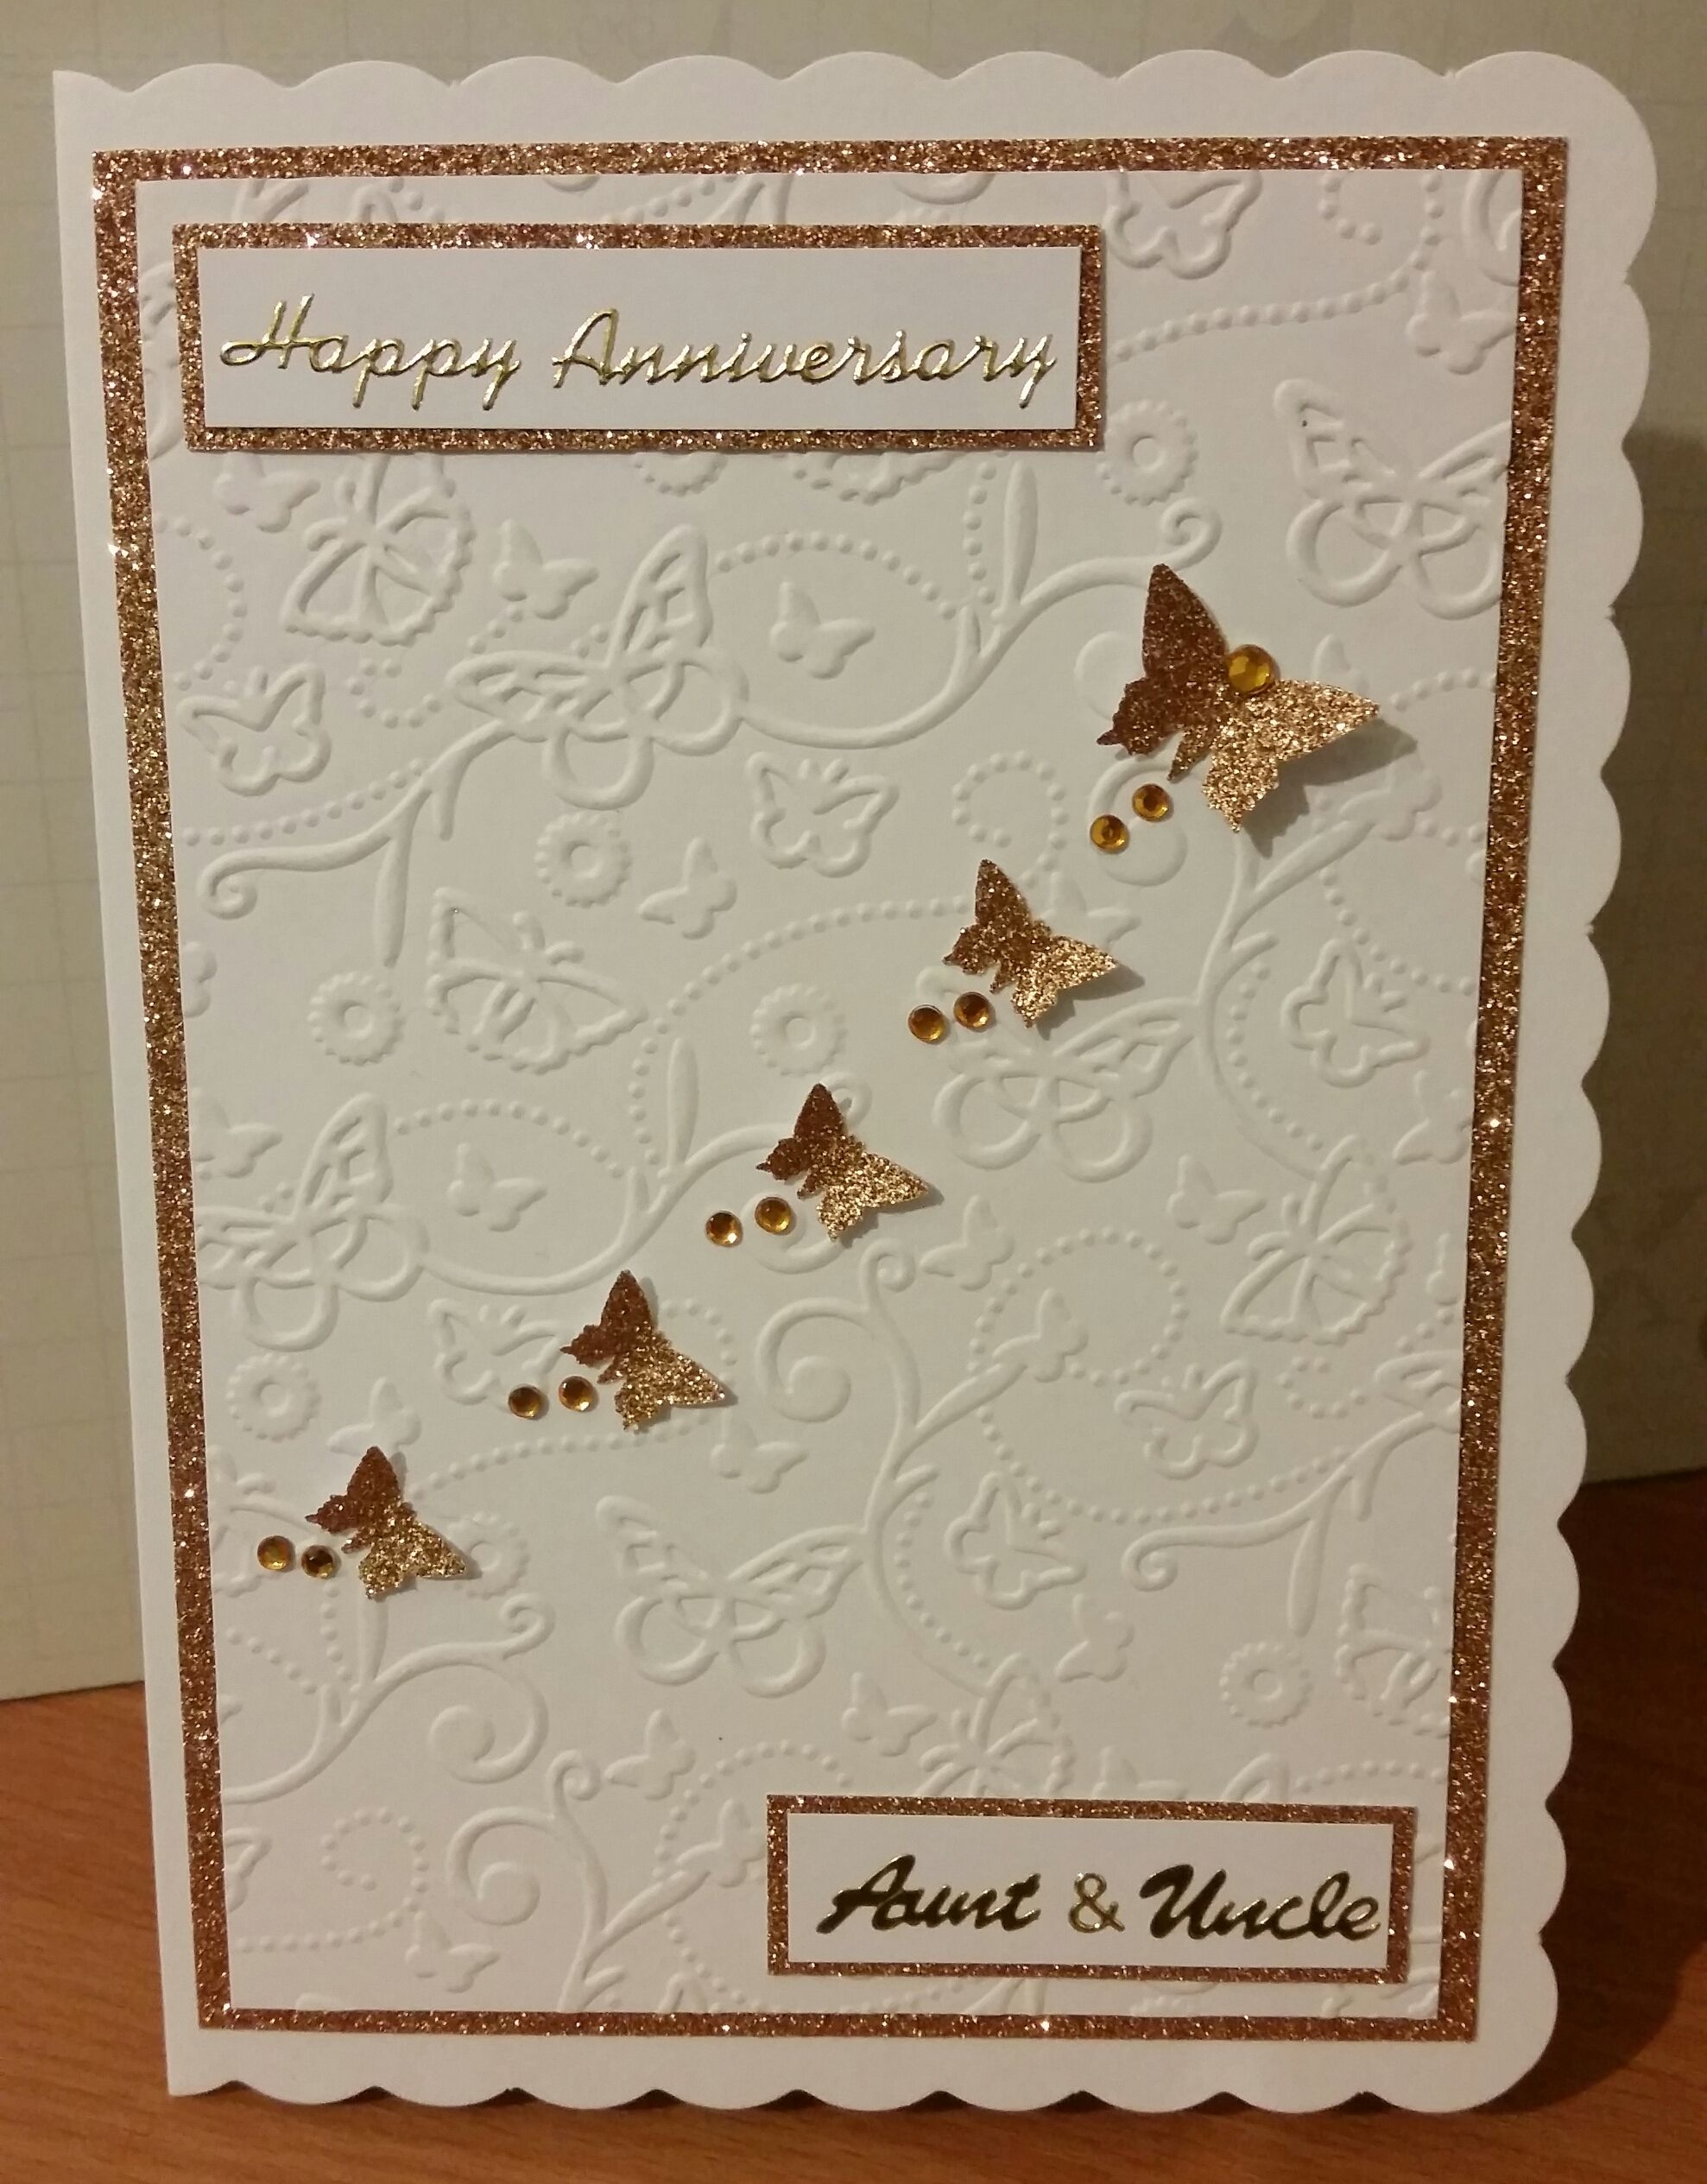 Happy Anniversary Aunt Uncle Happy Anniversary Handmade Cards For Friends Cards For Friends